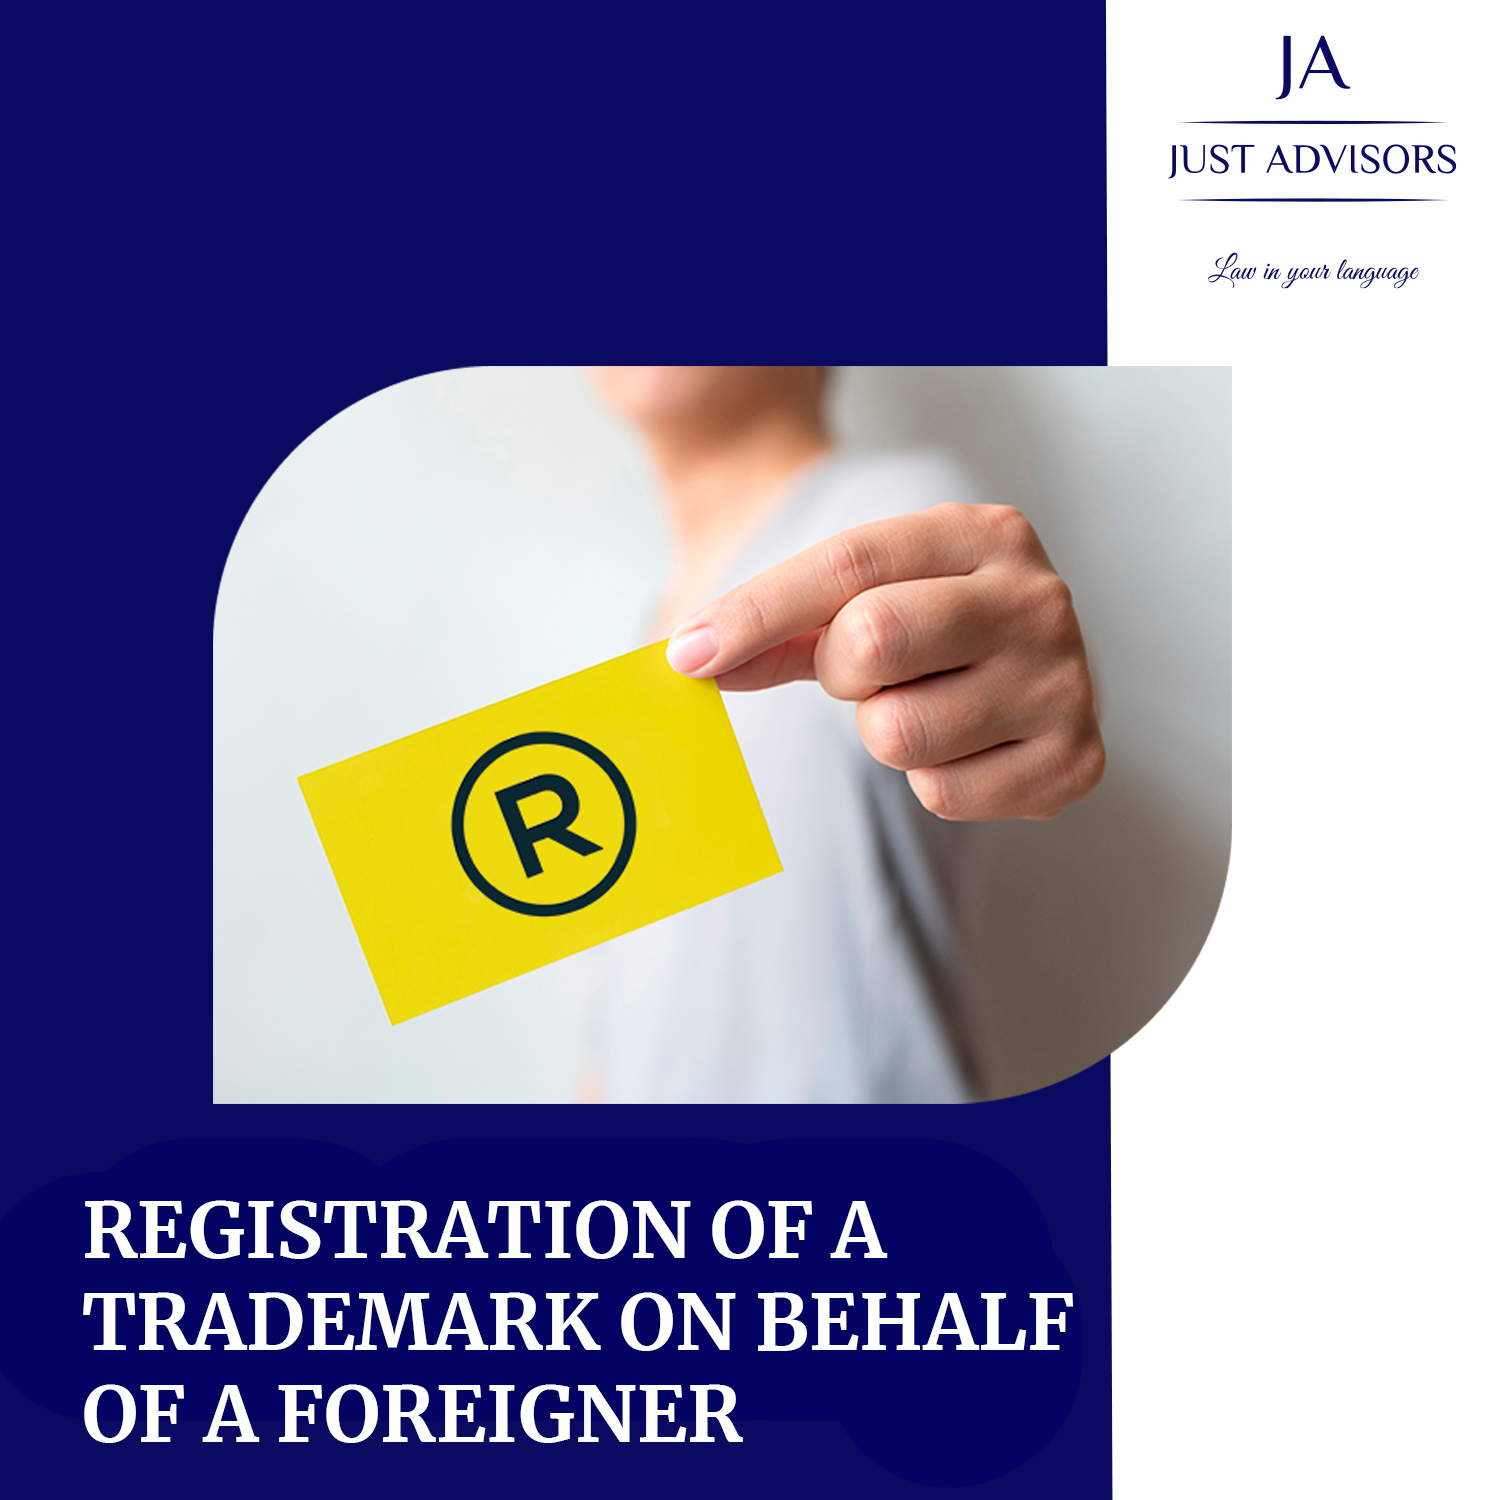 Registration of a trademark on behalf of a foreigner. Is it possible to include in the trademark designations of historical place names